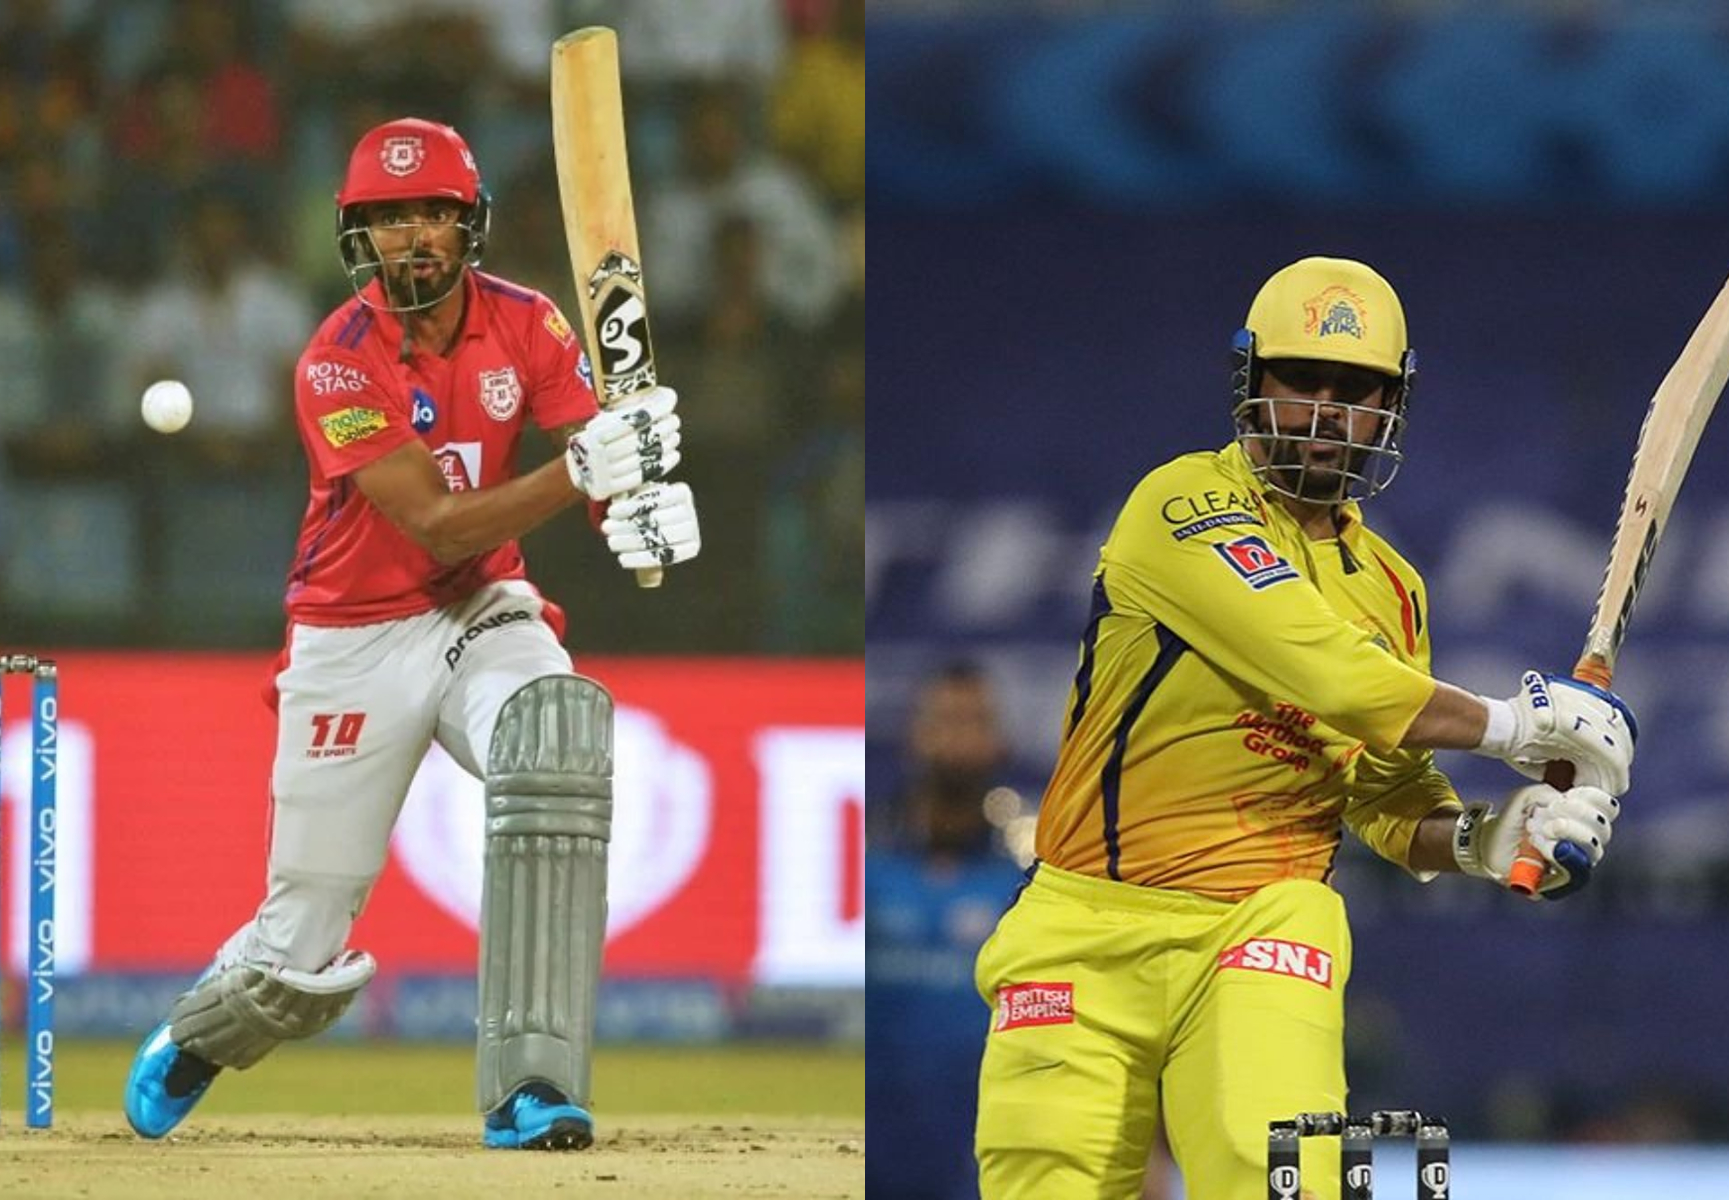 KXIP and CSK are both placed at the bottom two spots in IPL 2020 points table   IANS